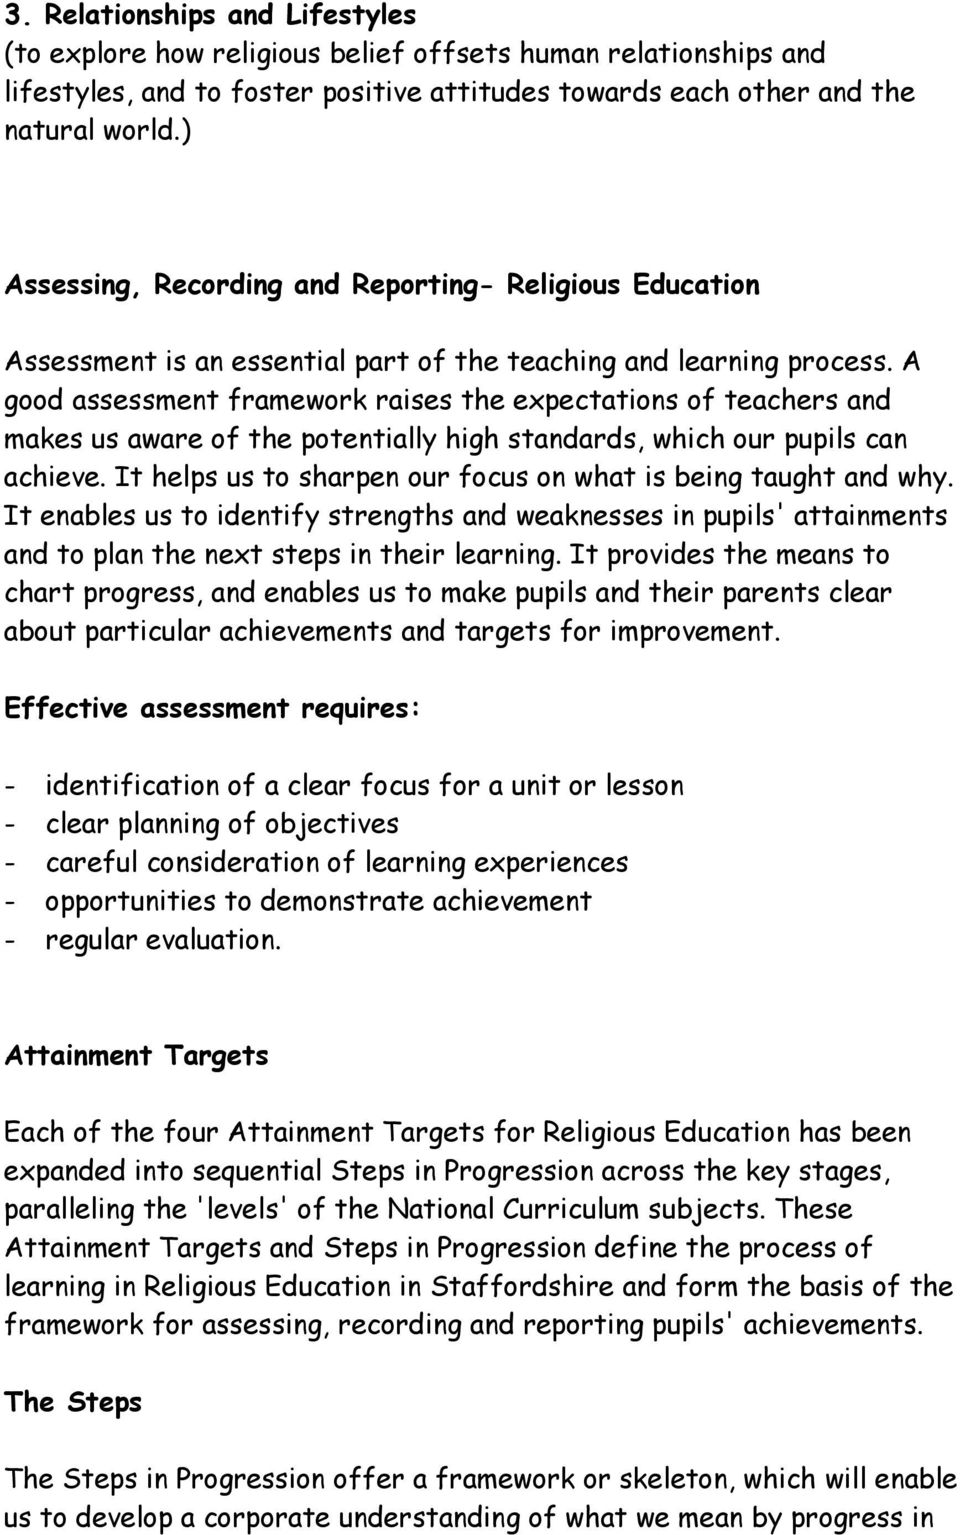 A good assessment framework raises the expectations of teachers and makes us aware of the potentially high standards, which our pupils can achieve.